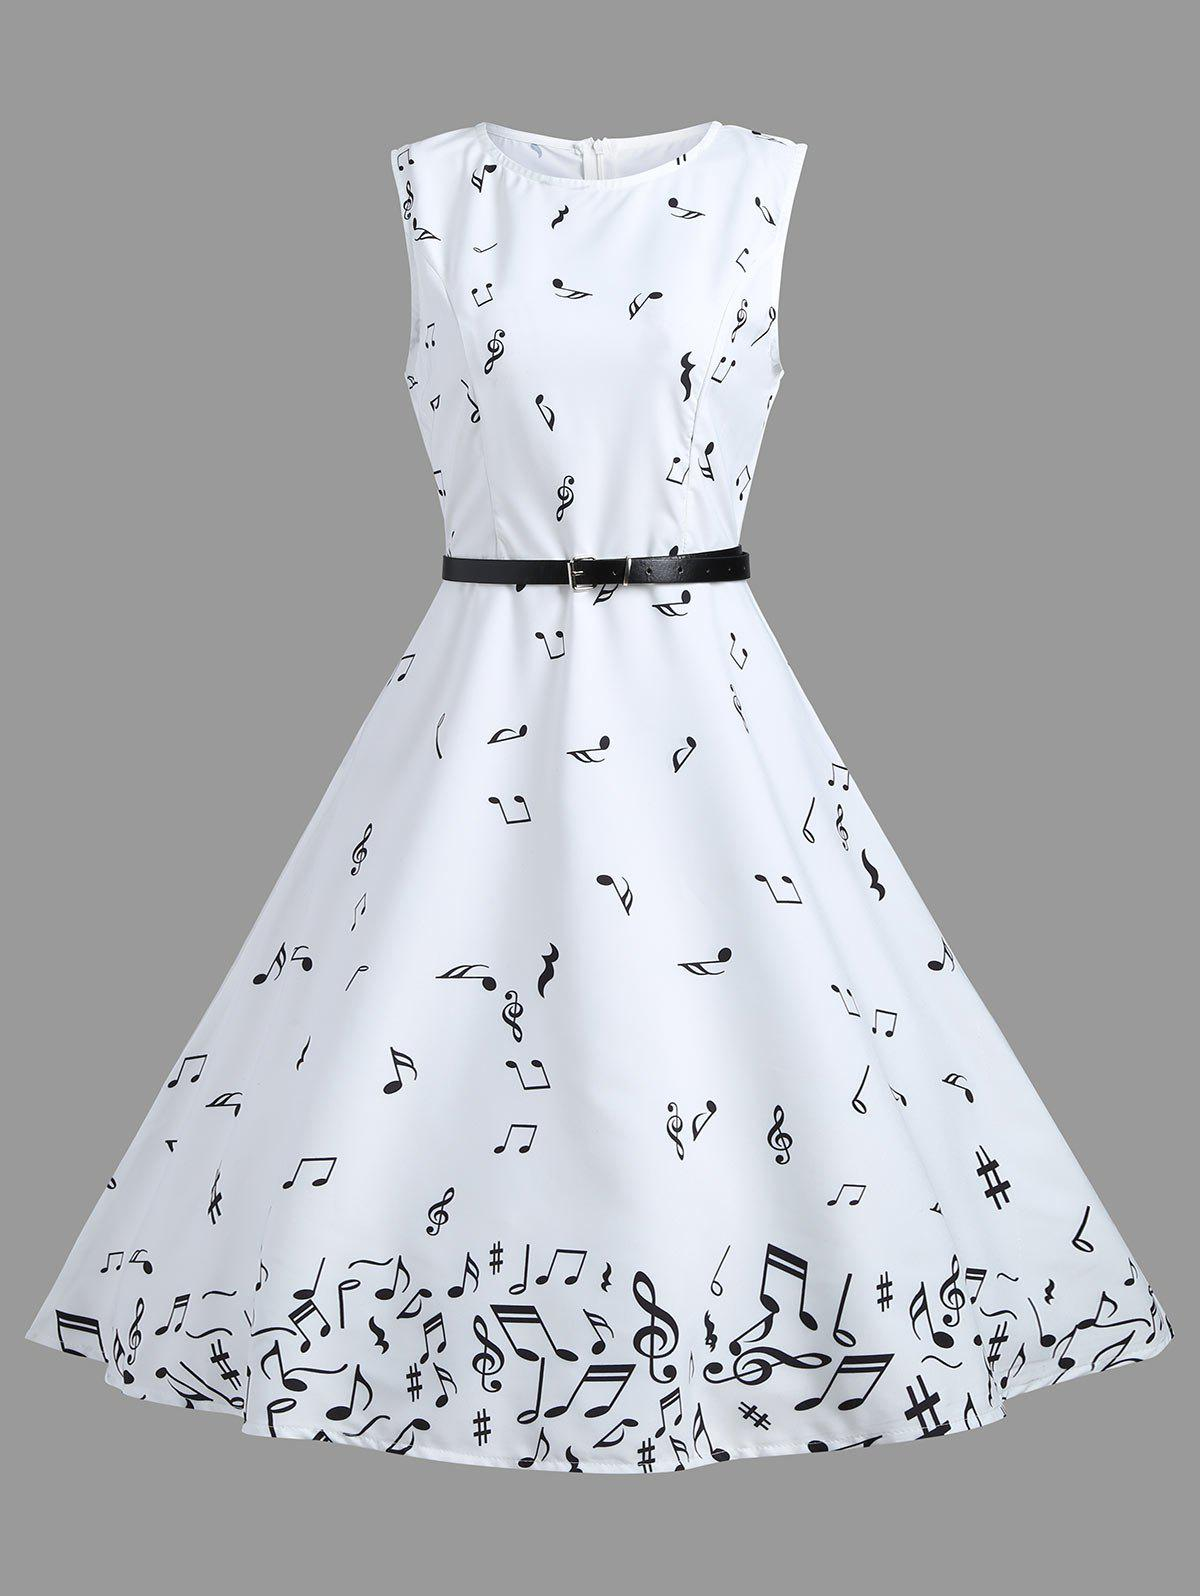 Vintage A Line Notes Print DressWOMEN<br><br>Size: 2XL; Color: WHITE; Style: Vintage; Material: Polyester; Silhouette: A-Line; Dresses Length: Knee-Length; Neckline: Round Collar; Sleeve Length: Sleeveless; Pattern Type: Print; With Belt: Yes; Season: Spring,Summer; Weight: 0.2700kg; Package Contents: 1 x Dress;